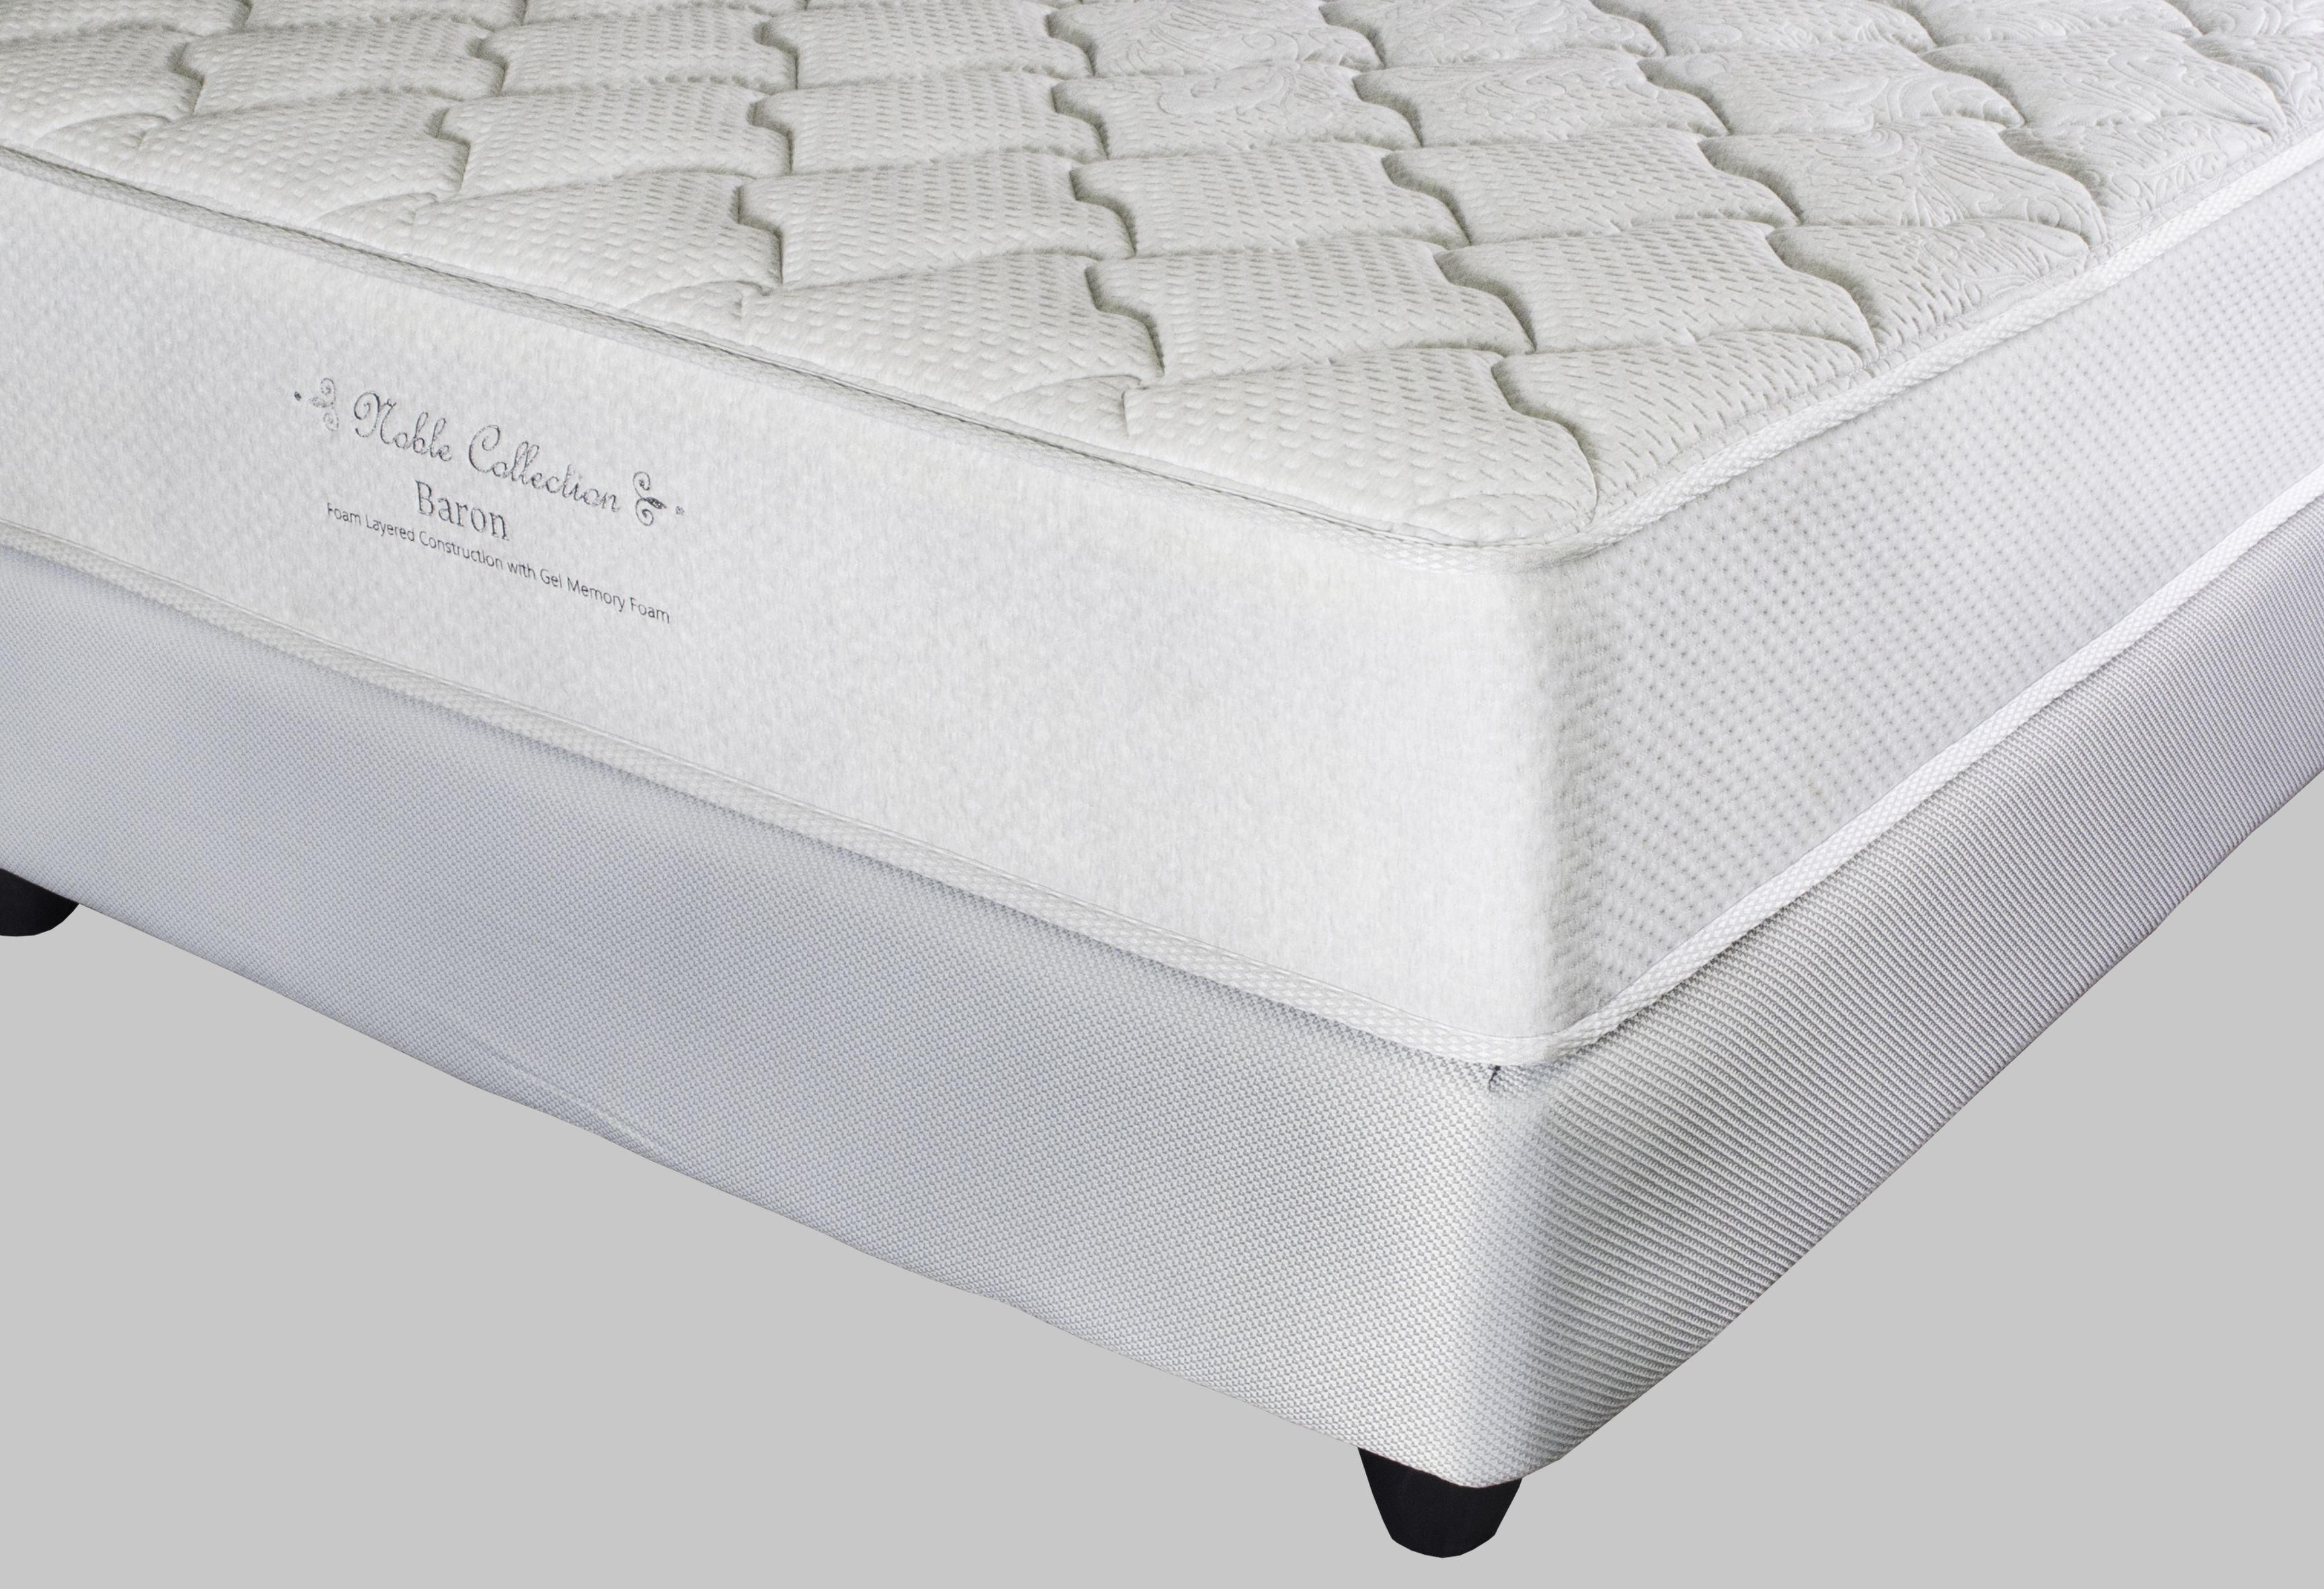 Buy Your Noble Collection Barron Queen Bed Set By Clicking On The Link Noble Collection Baron Foam Layered Mattress With Images Queen Bedding Sets Mattress Bed Base